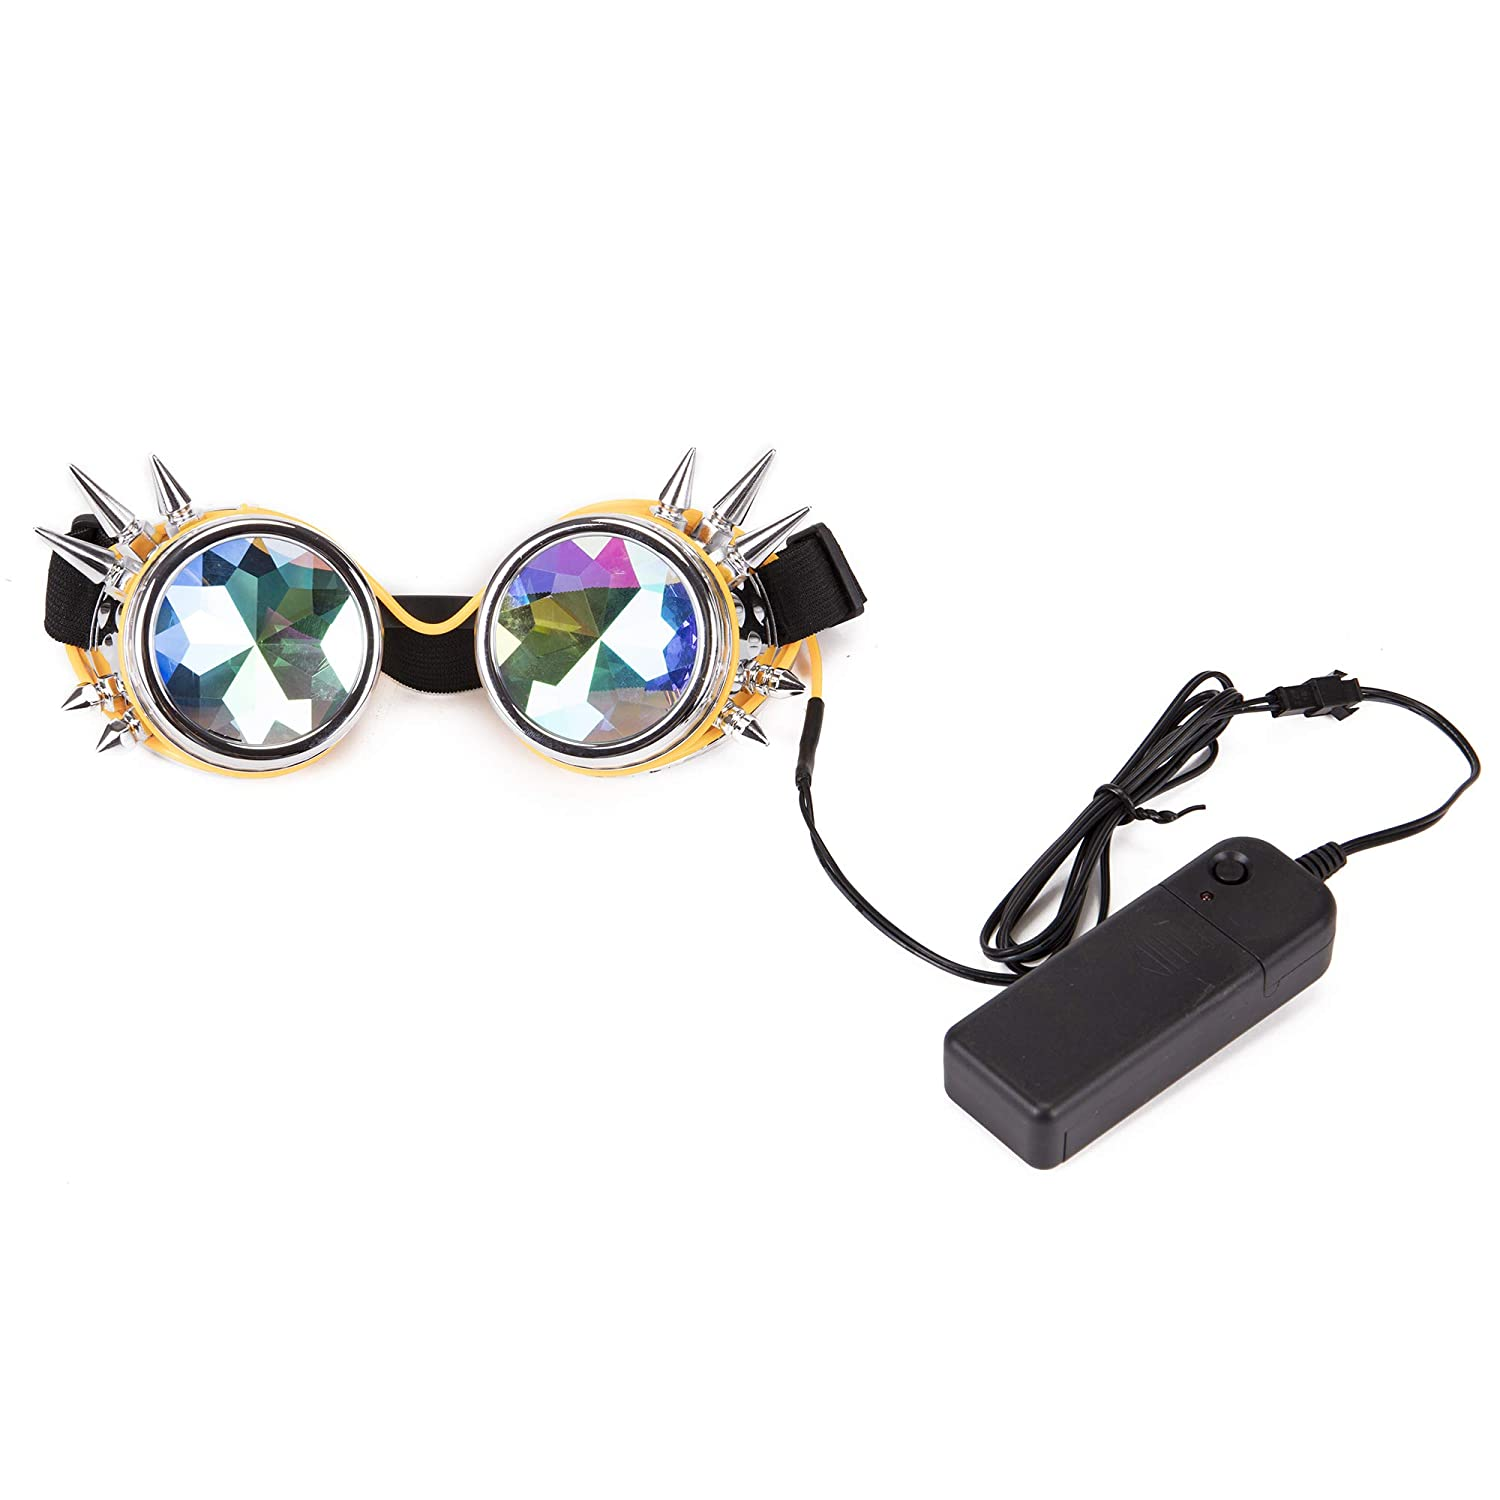 KOLCY Kaleidoscope Glasses Spiked Glowing Tube Steampunk Goggles Crystal Glass